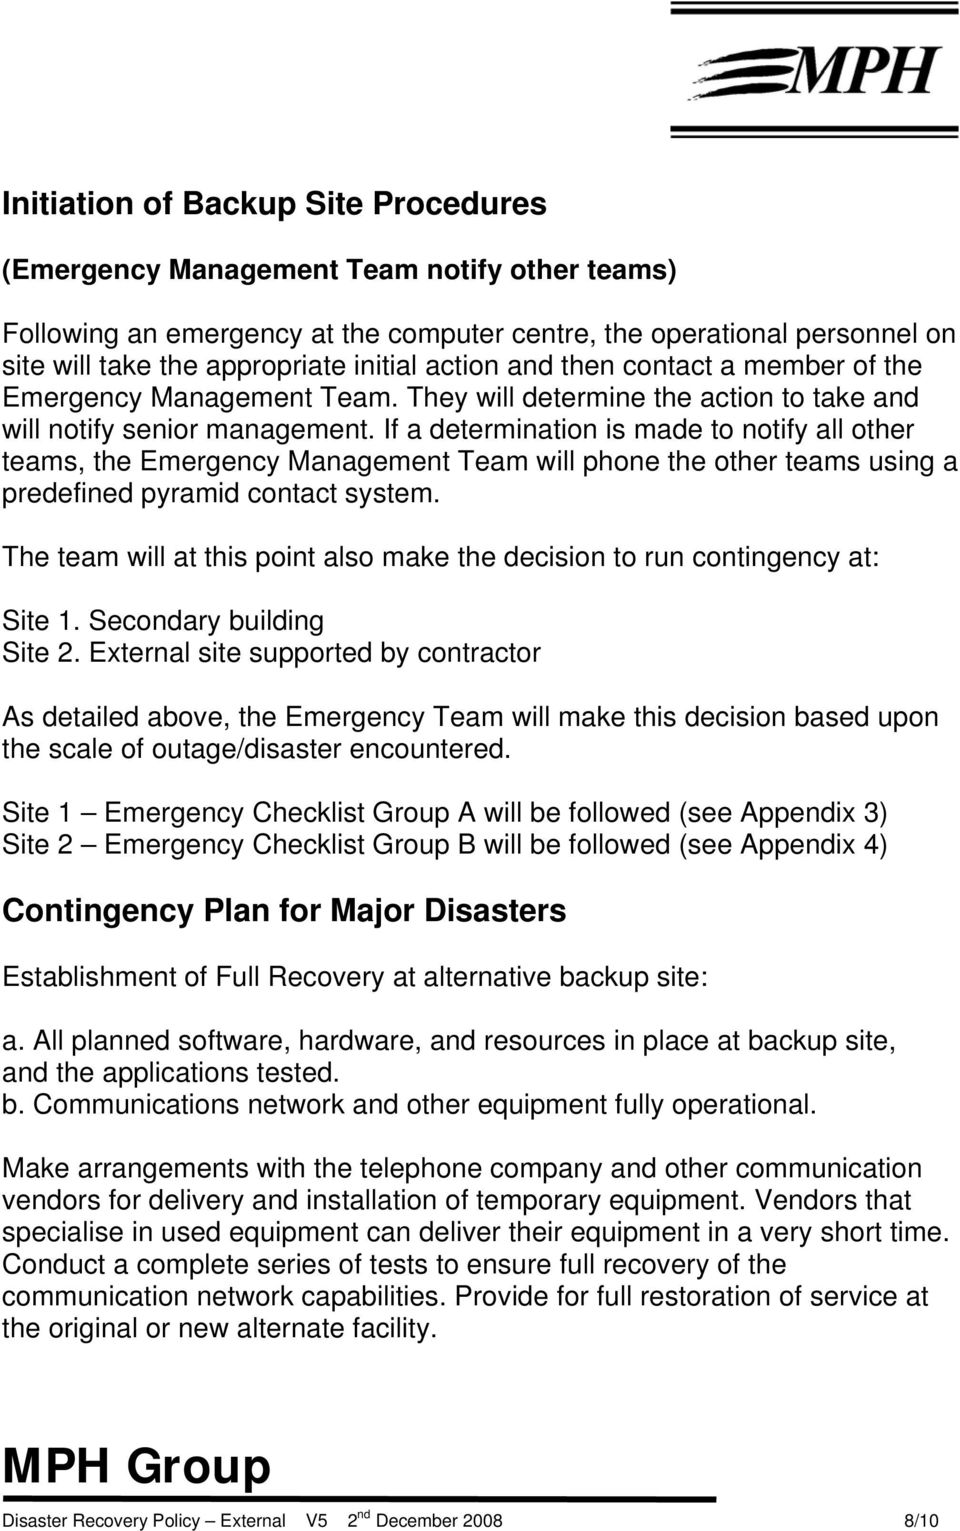 If a determination is made to notify all other teams, the Emergency Management Team will phone the other teams using a predefined pyramid contact system.